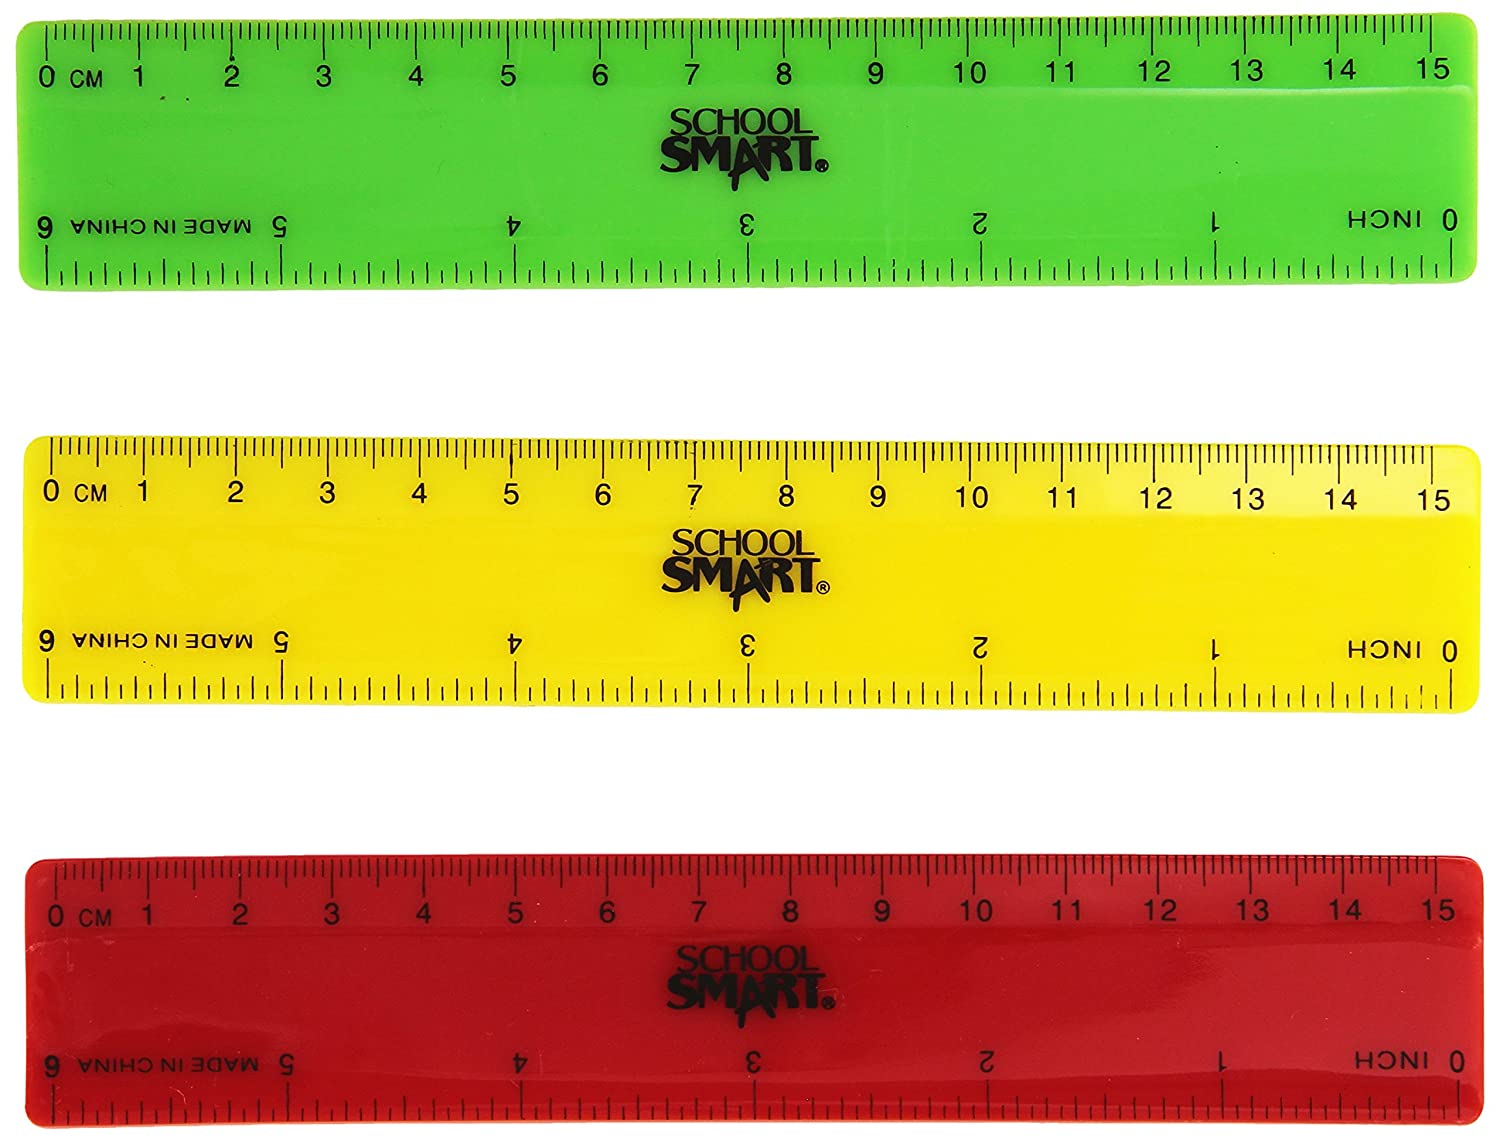 "School Smart 1473613 Plastic Ruler, 6"", Assorted Colors (Pack of 6)"